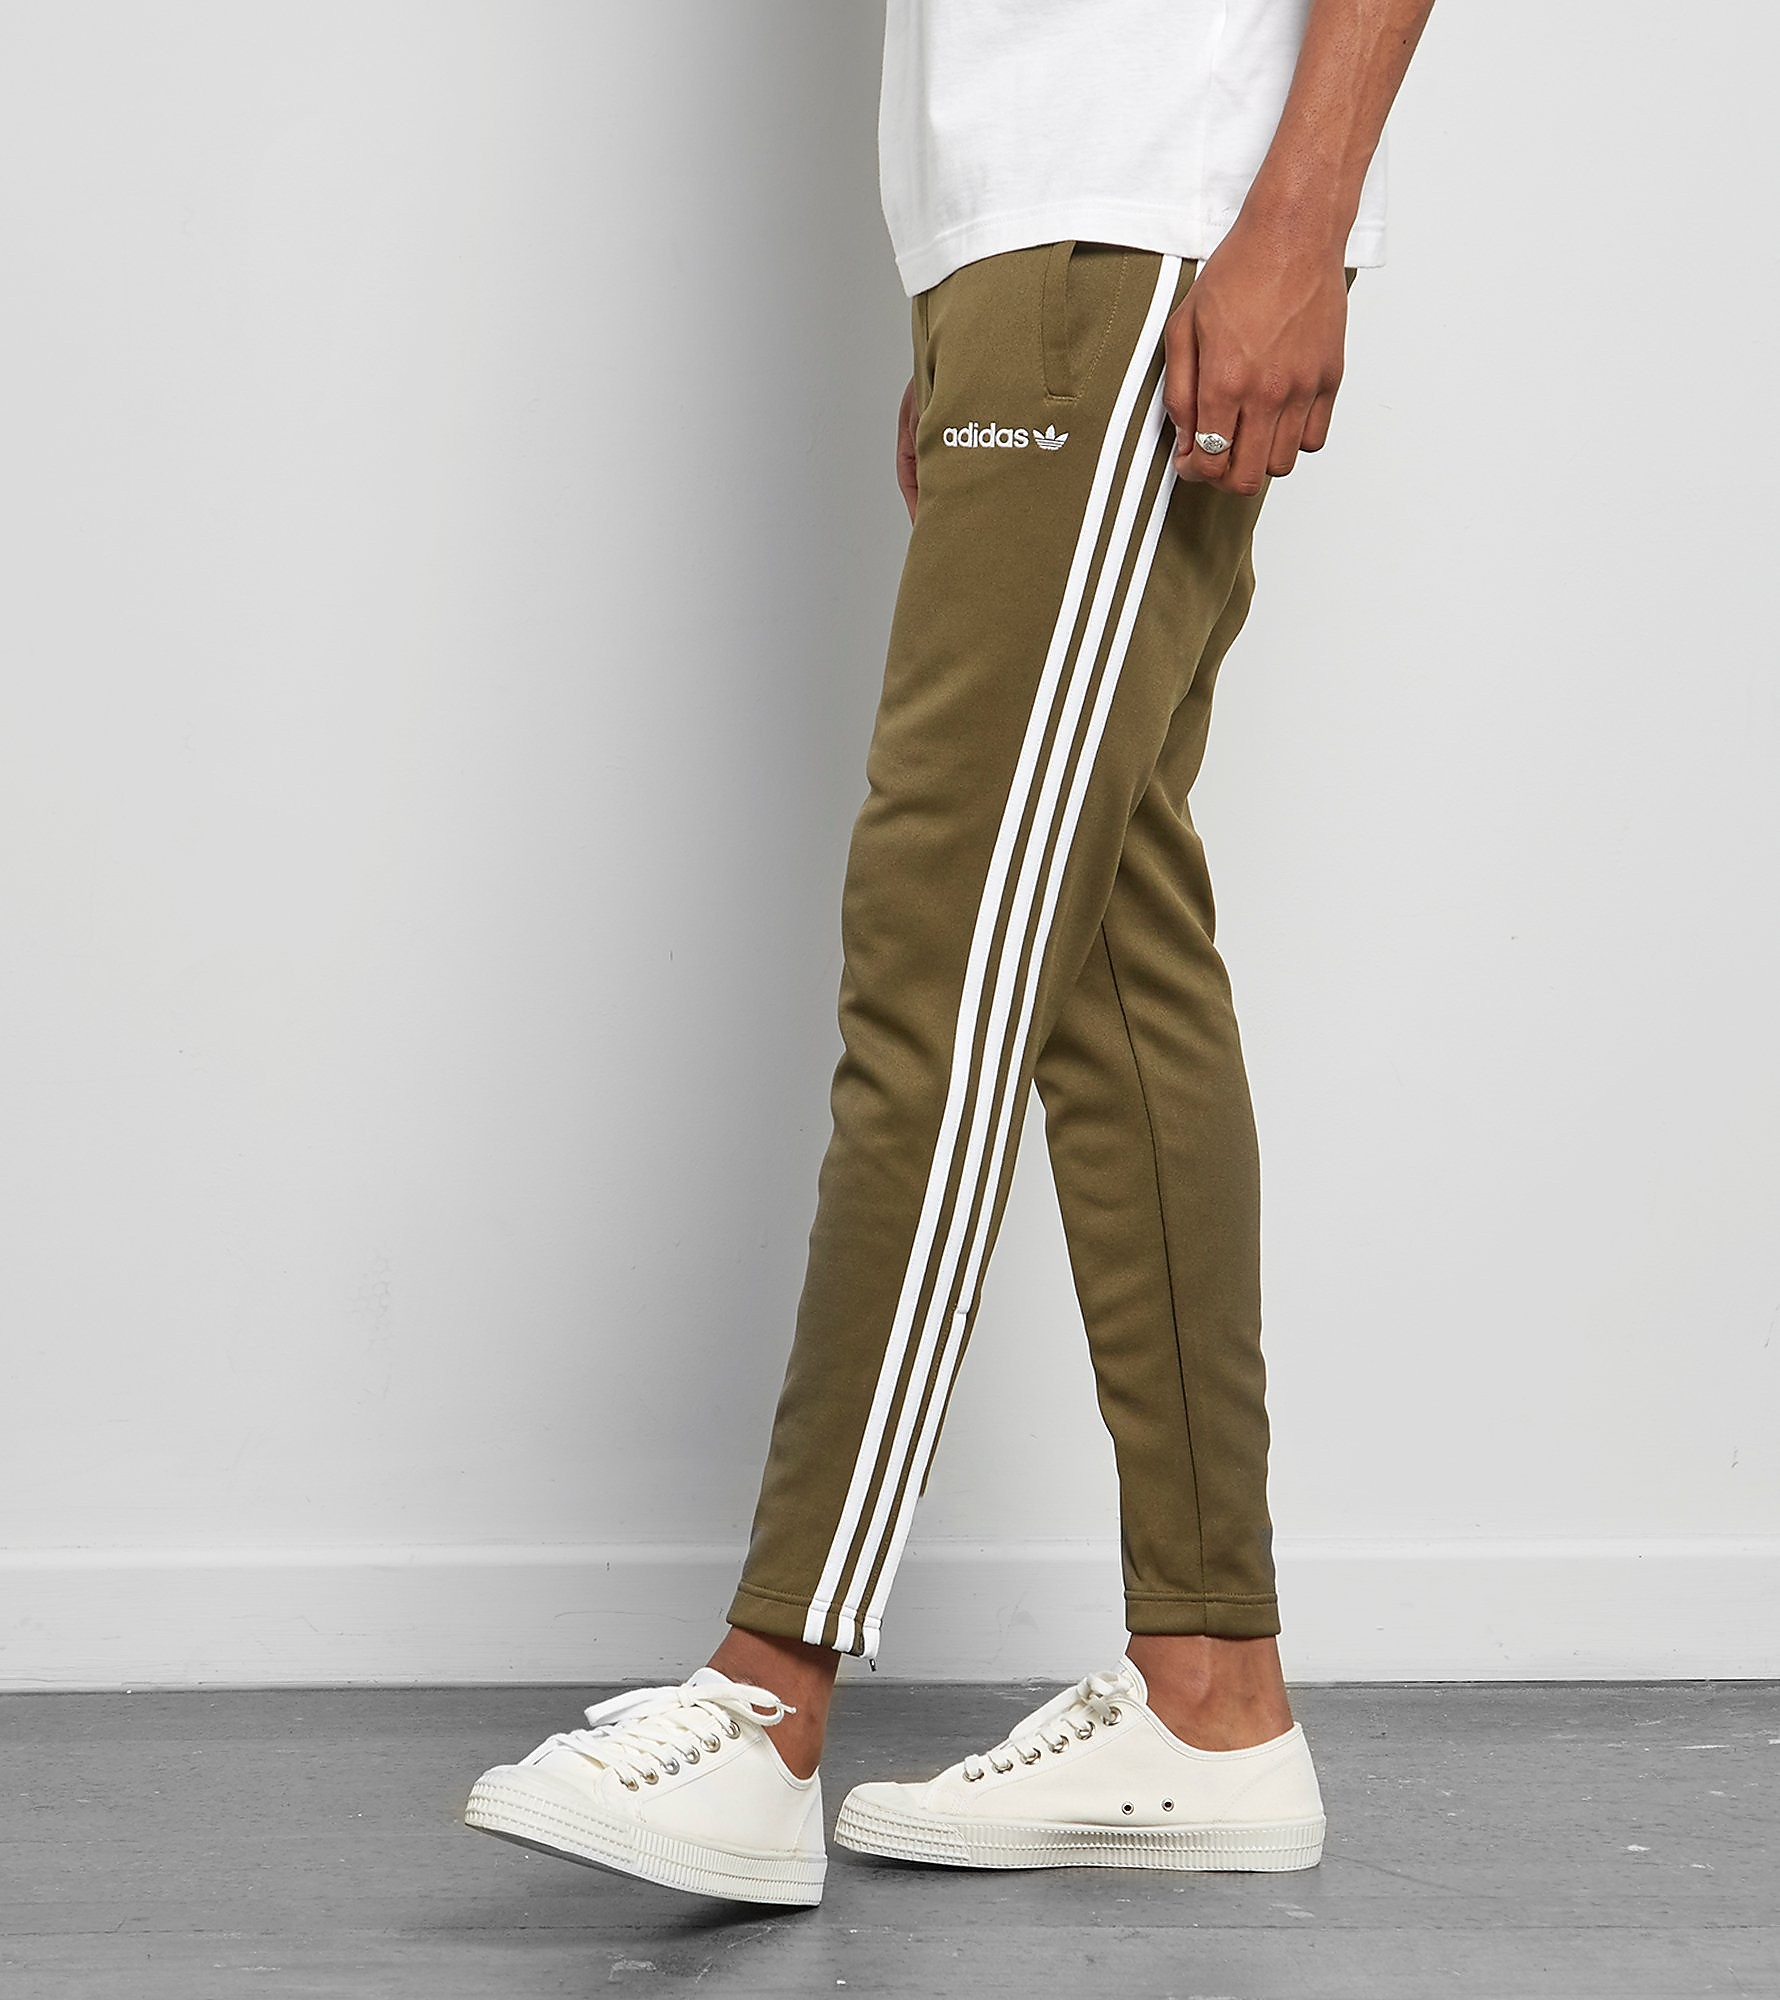 adidas Originals Superstar Taper Track Pant - size? Exclusive